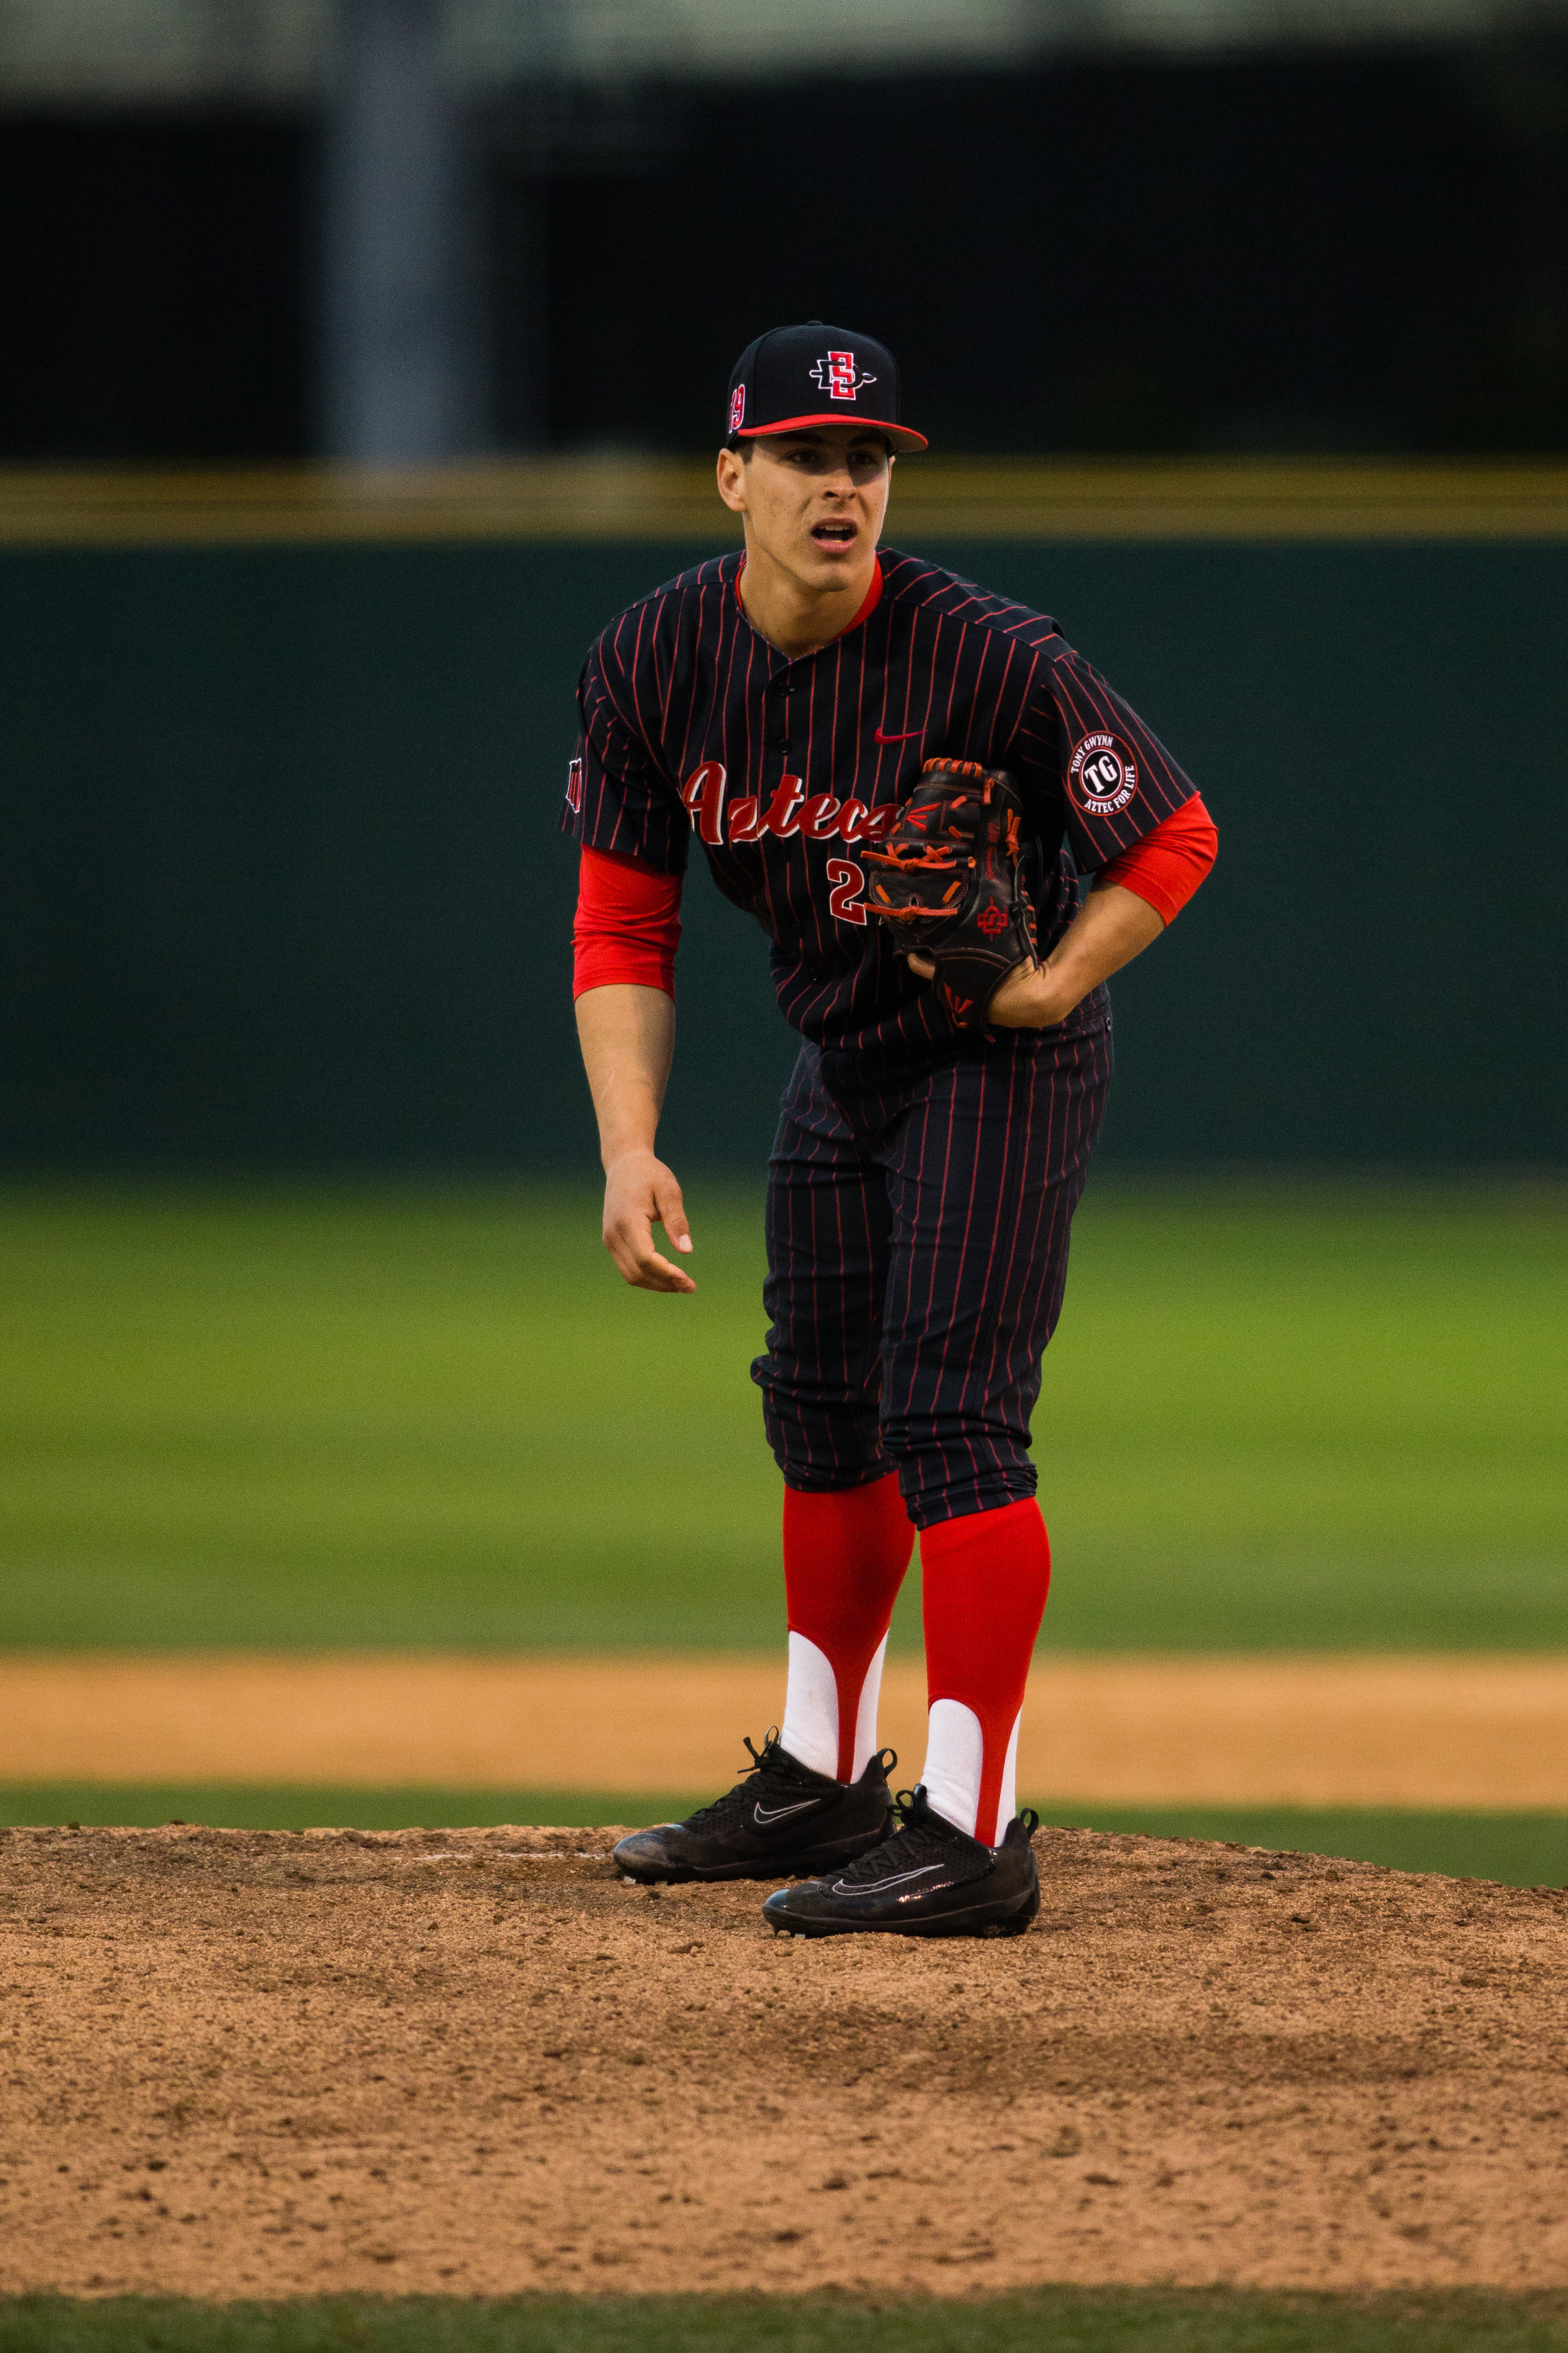 aztecs to visit ucsb for three games this weekend - sdsu athletics